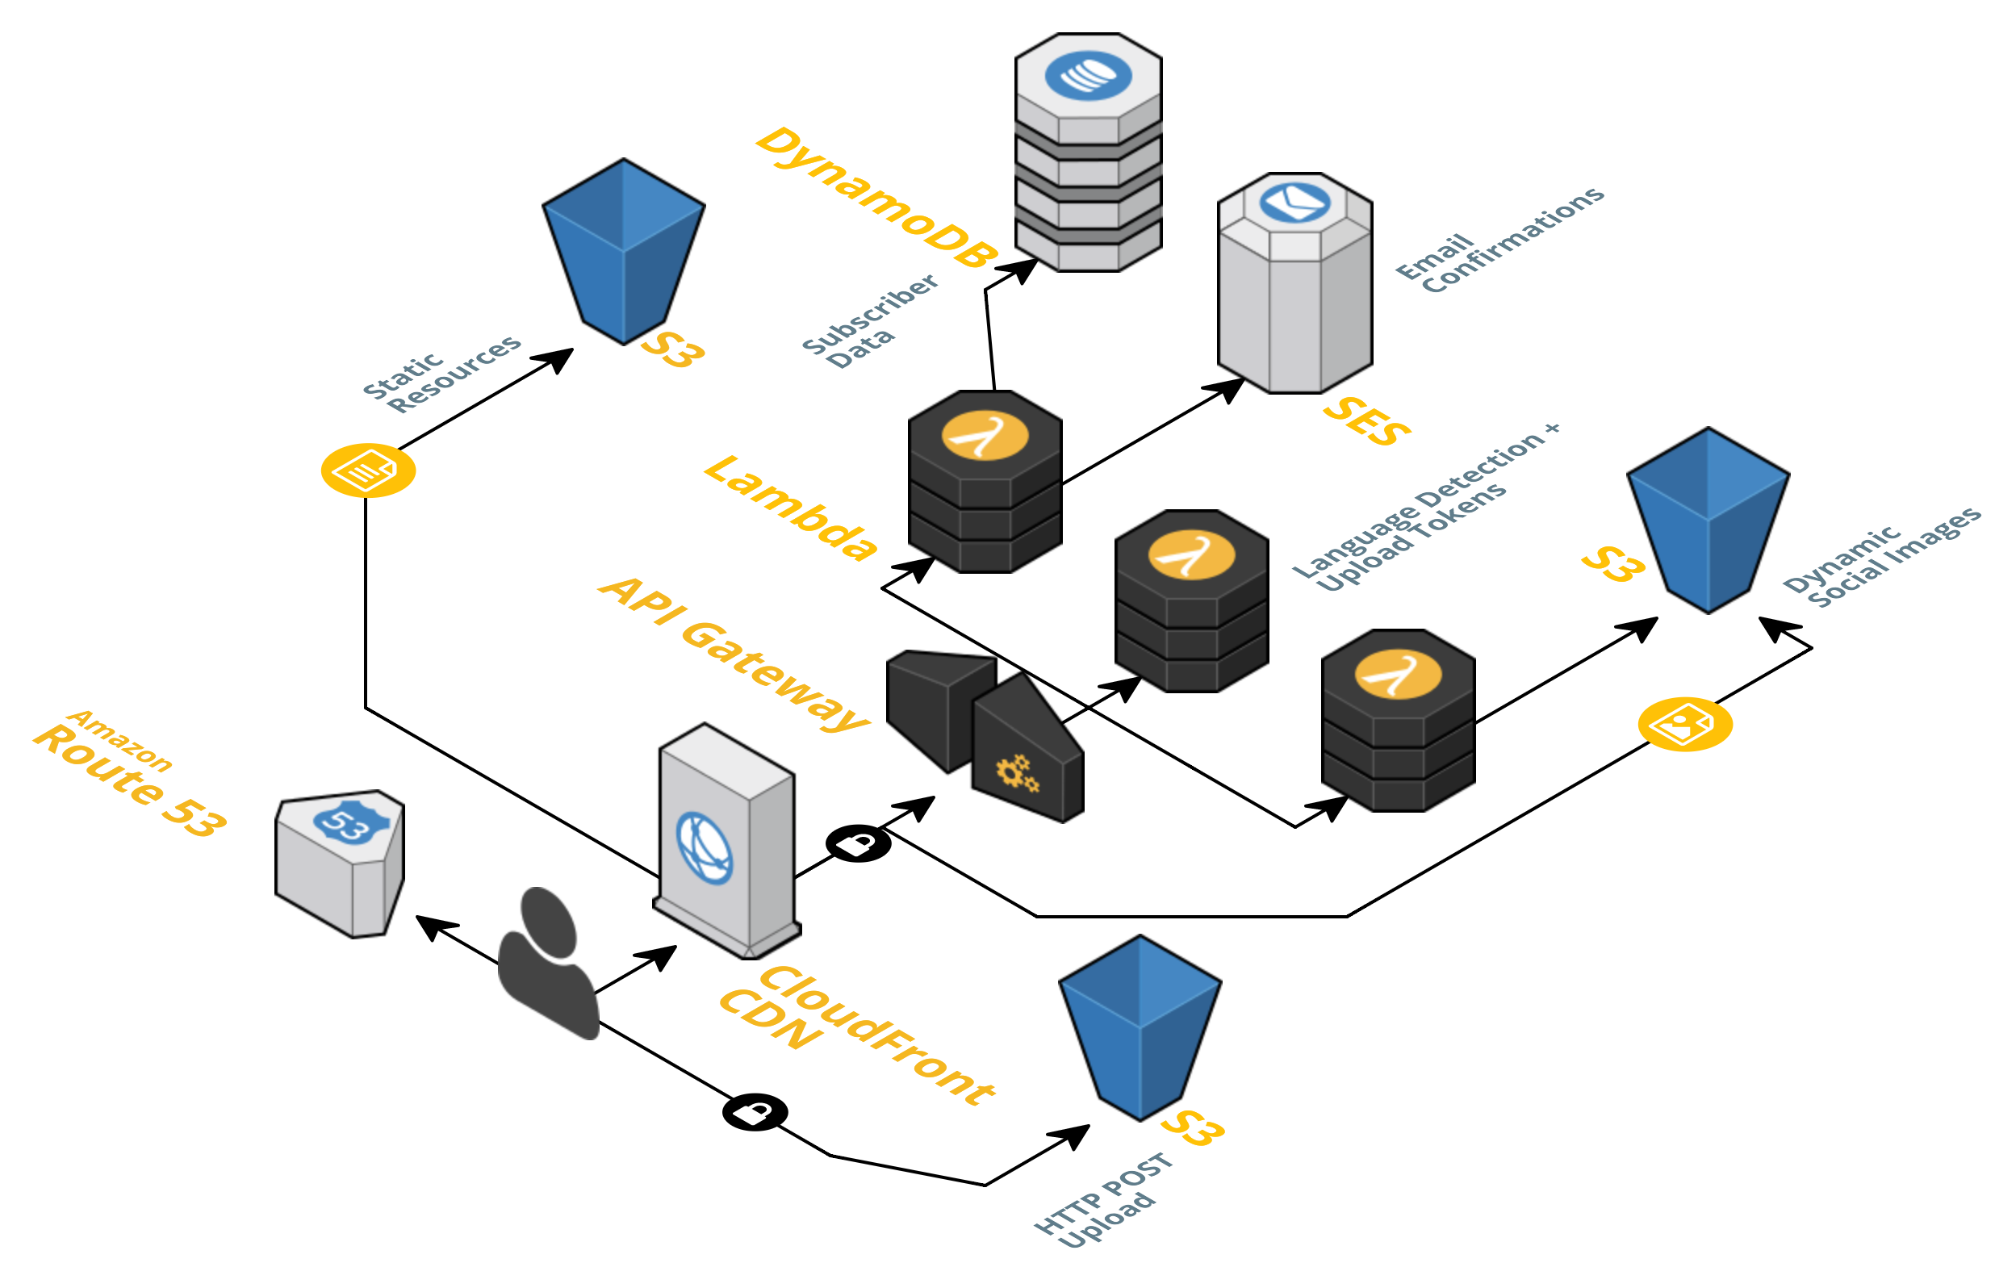 AWS service architecture diagram